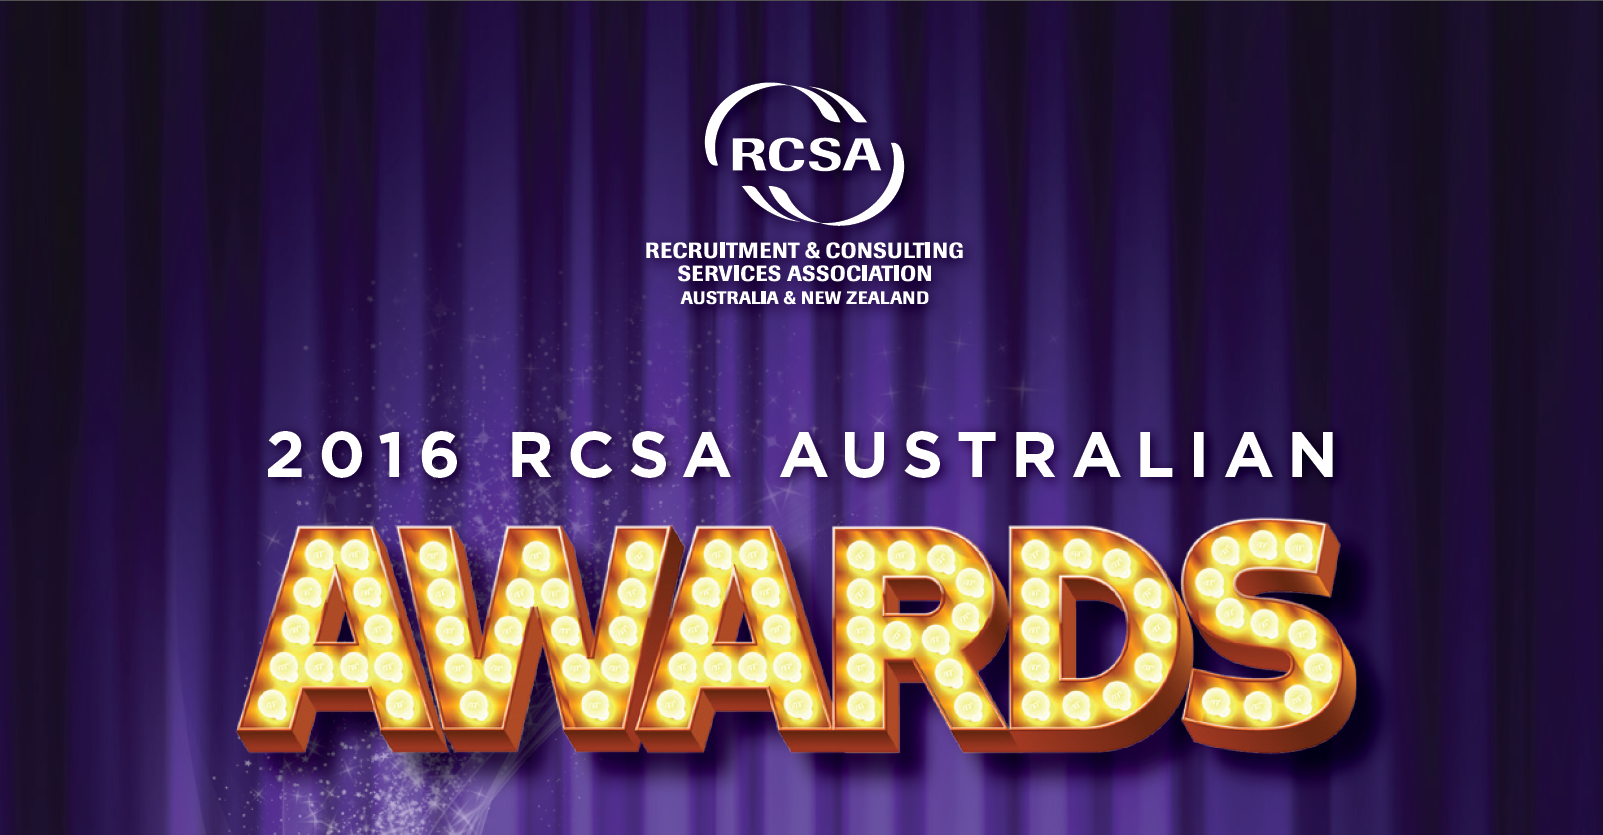 M%20Resources nominated for RCSA Australian Awards 2016